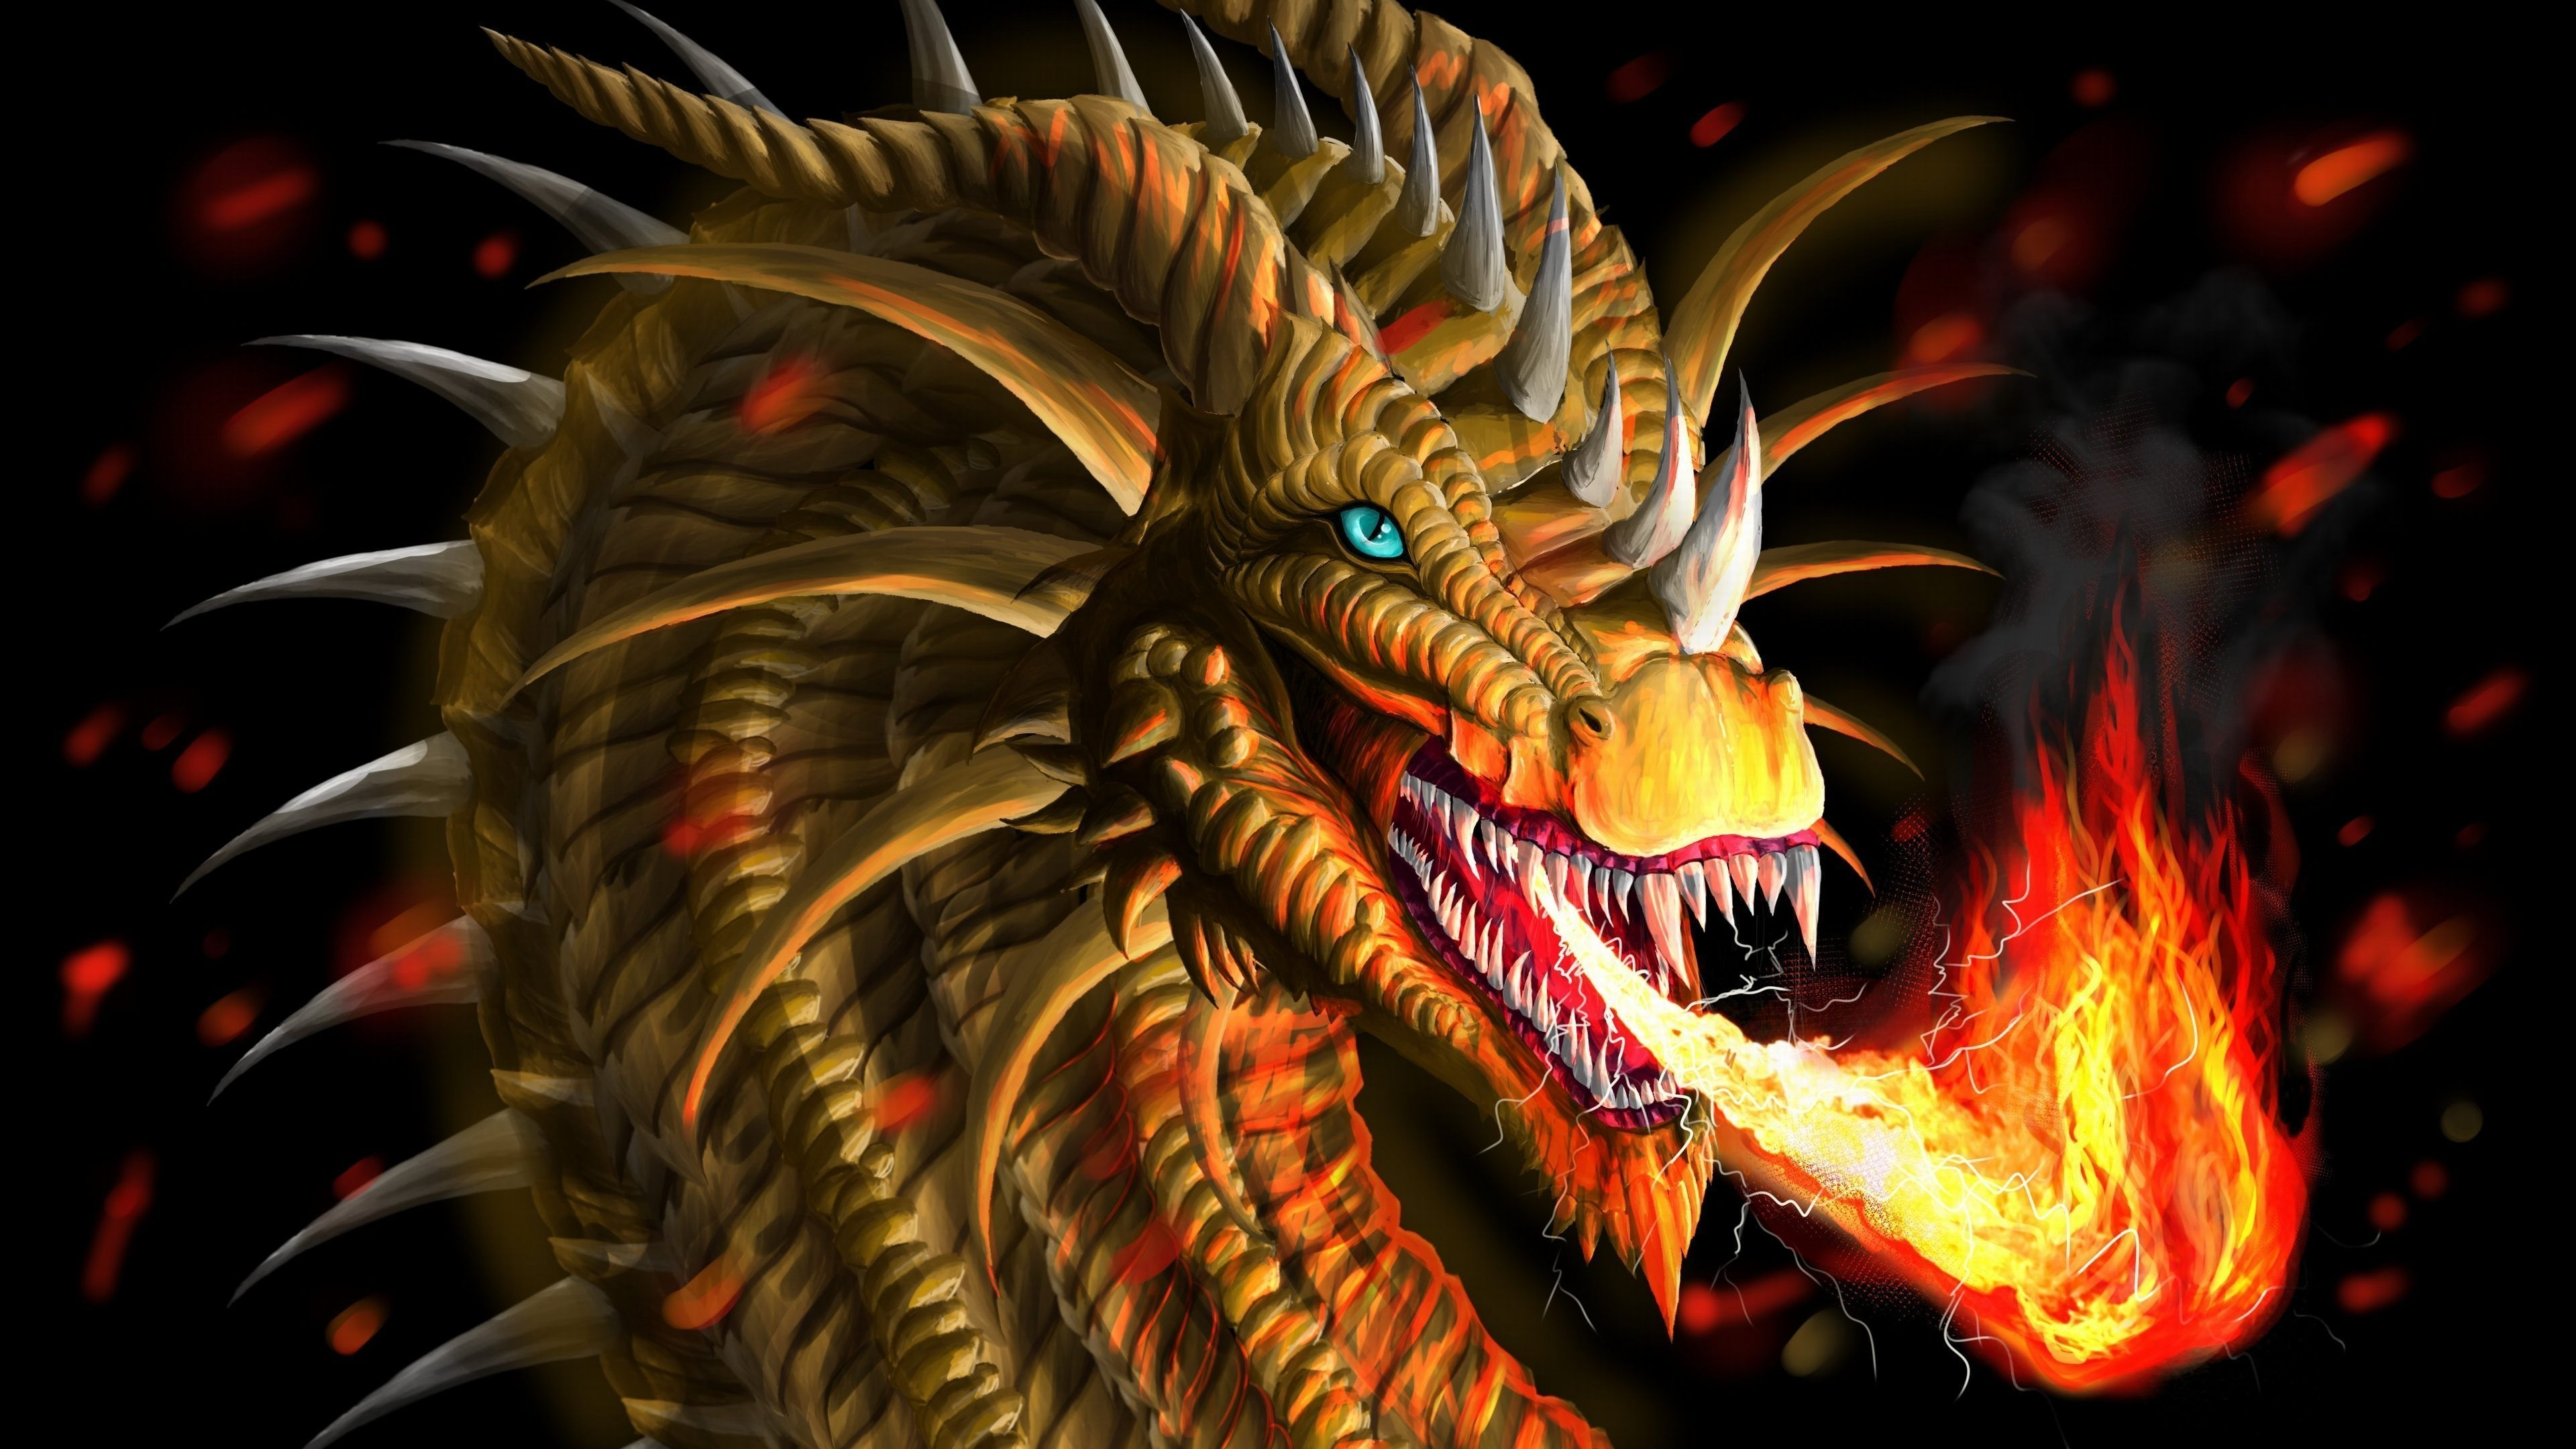 fire dragon wallpaper free download in ultra hd resolution